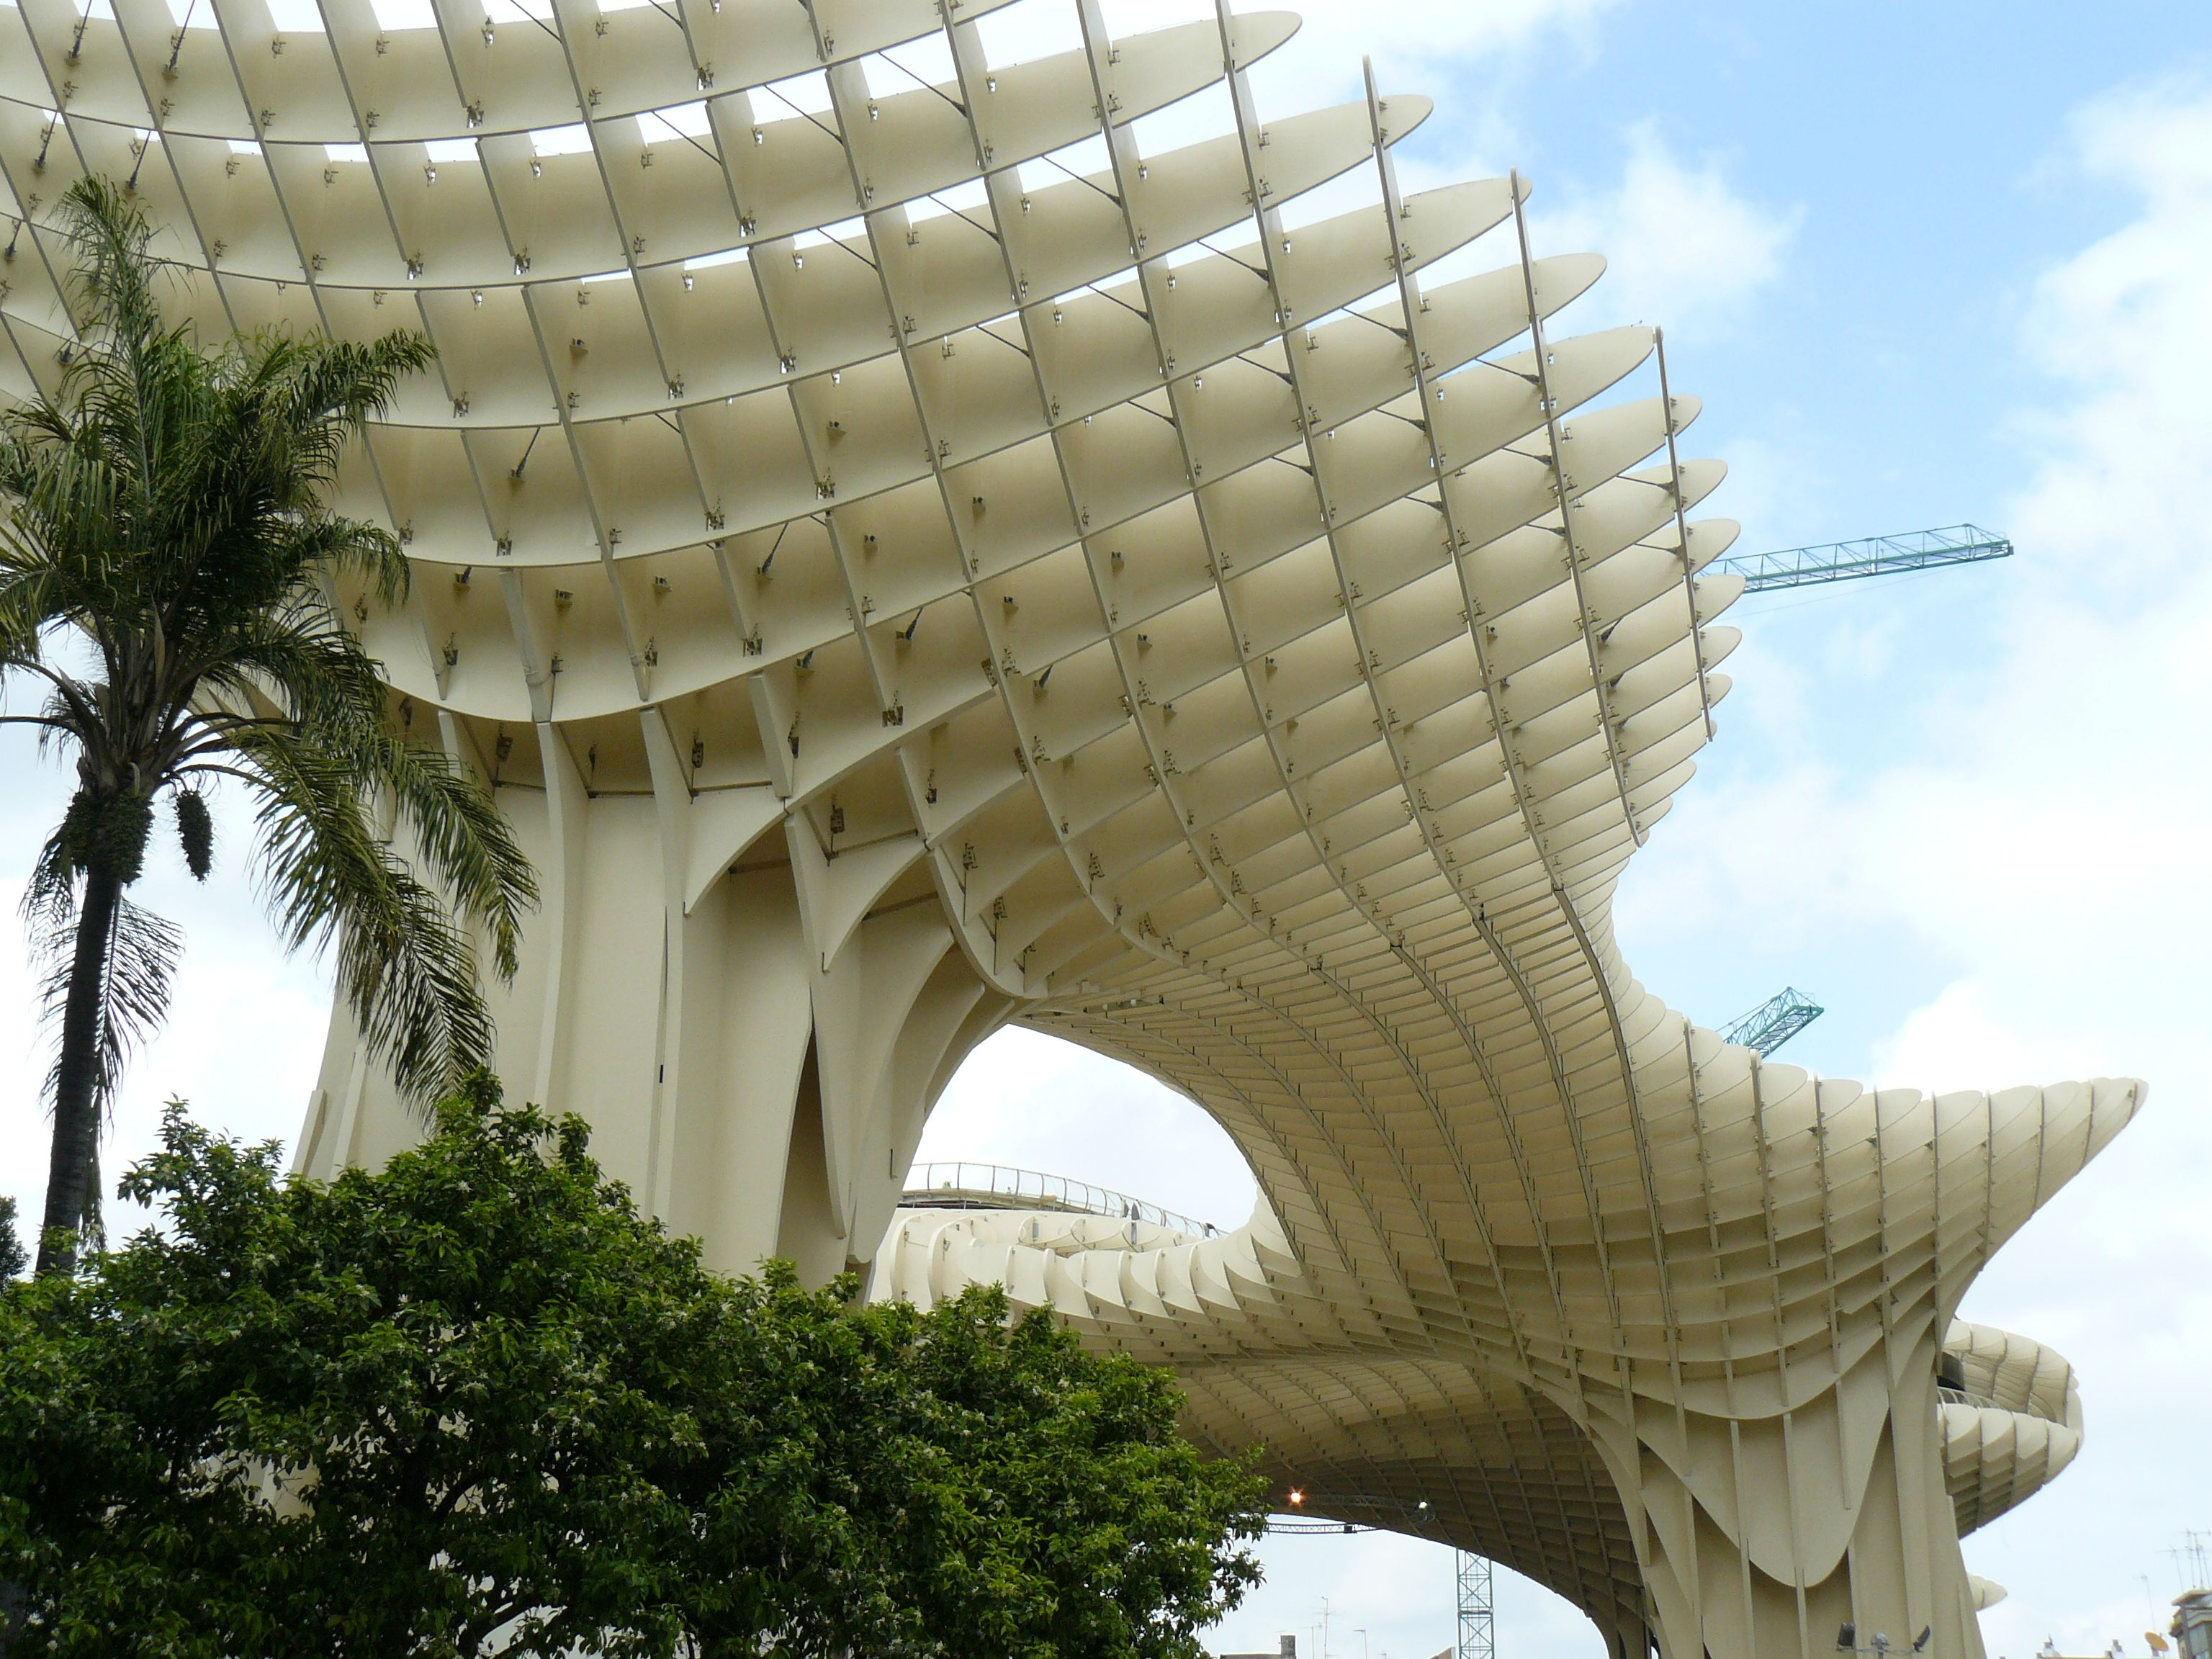 Metropol parasol the world s largest wooden structure - Building Parasol Metropol Kerto Lvl Used In Complex Structures Of One Of The World S Largest Wooden